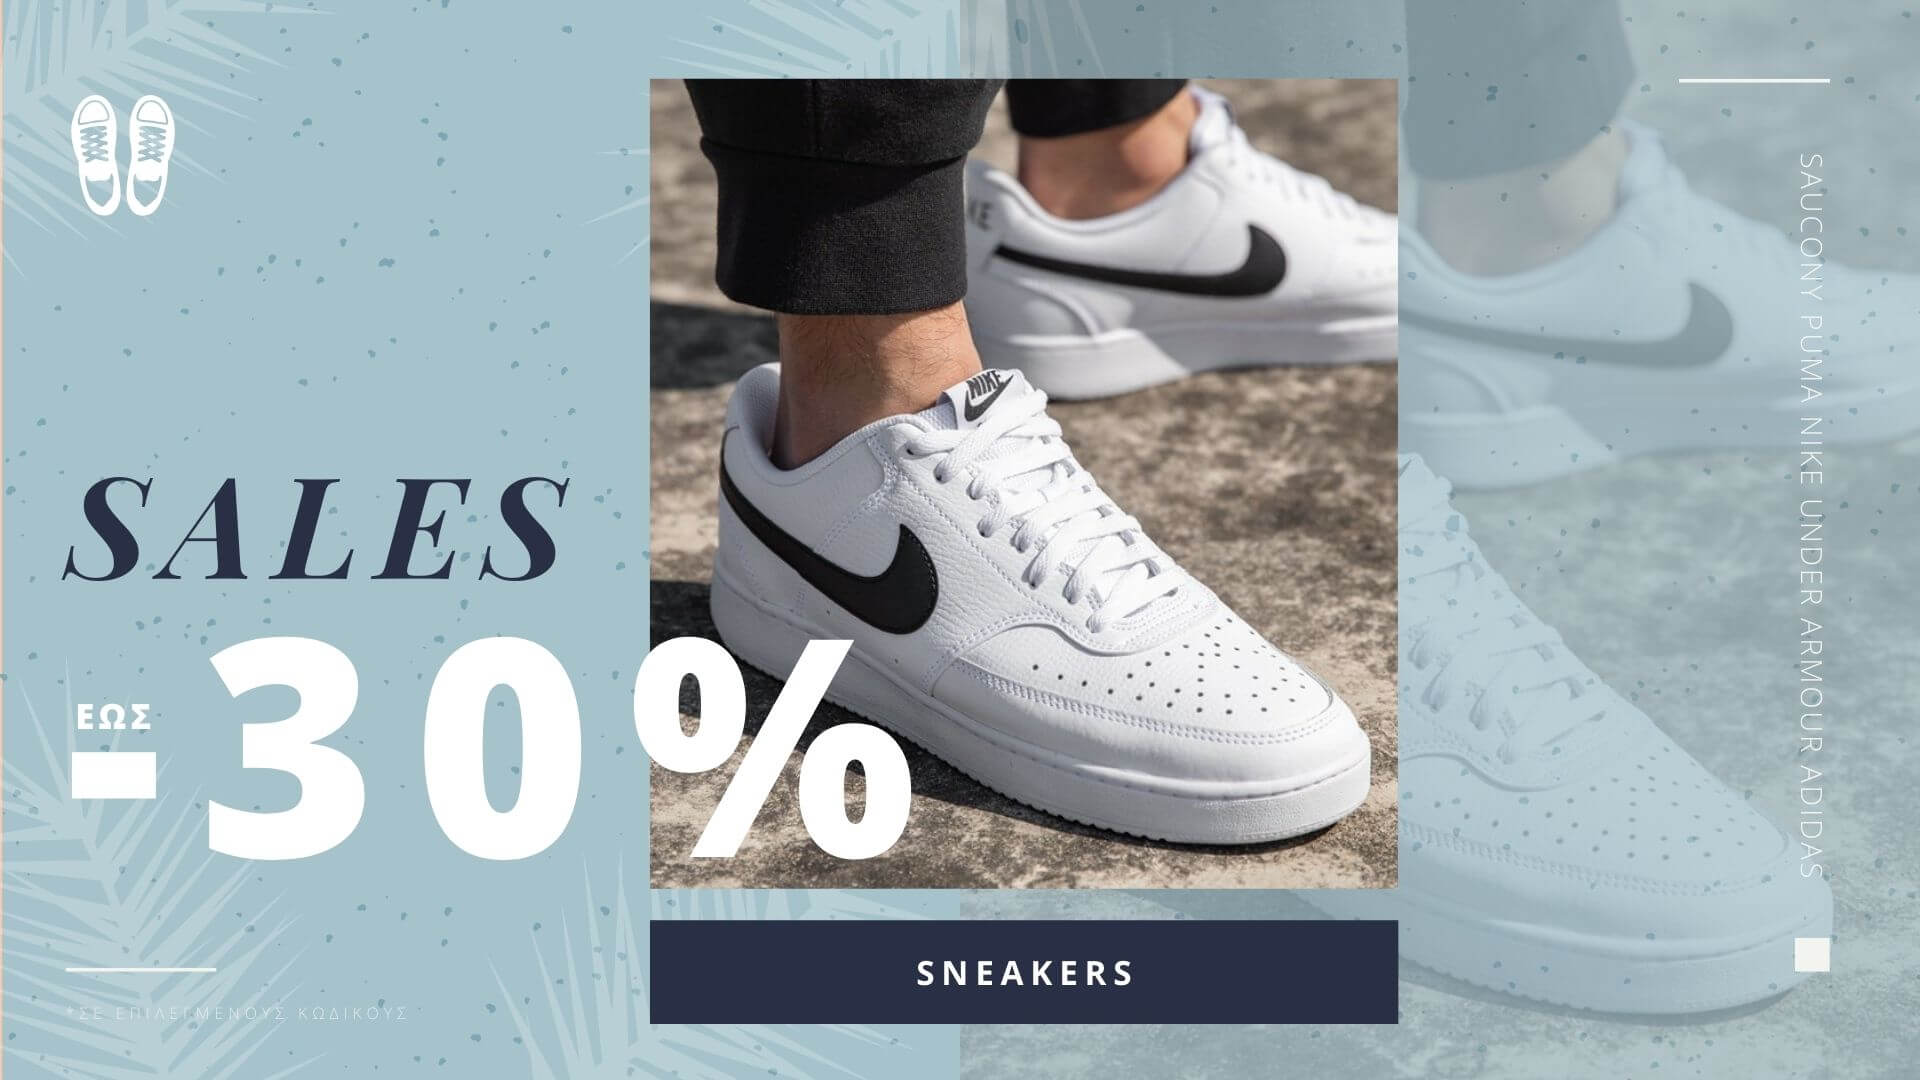 summer sales sneakers up to -50%